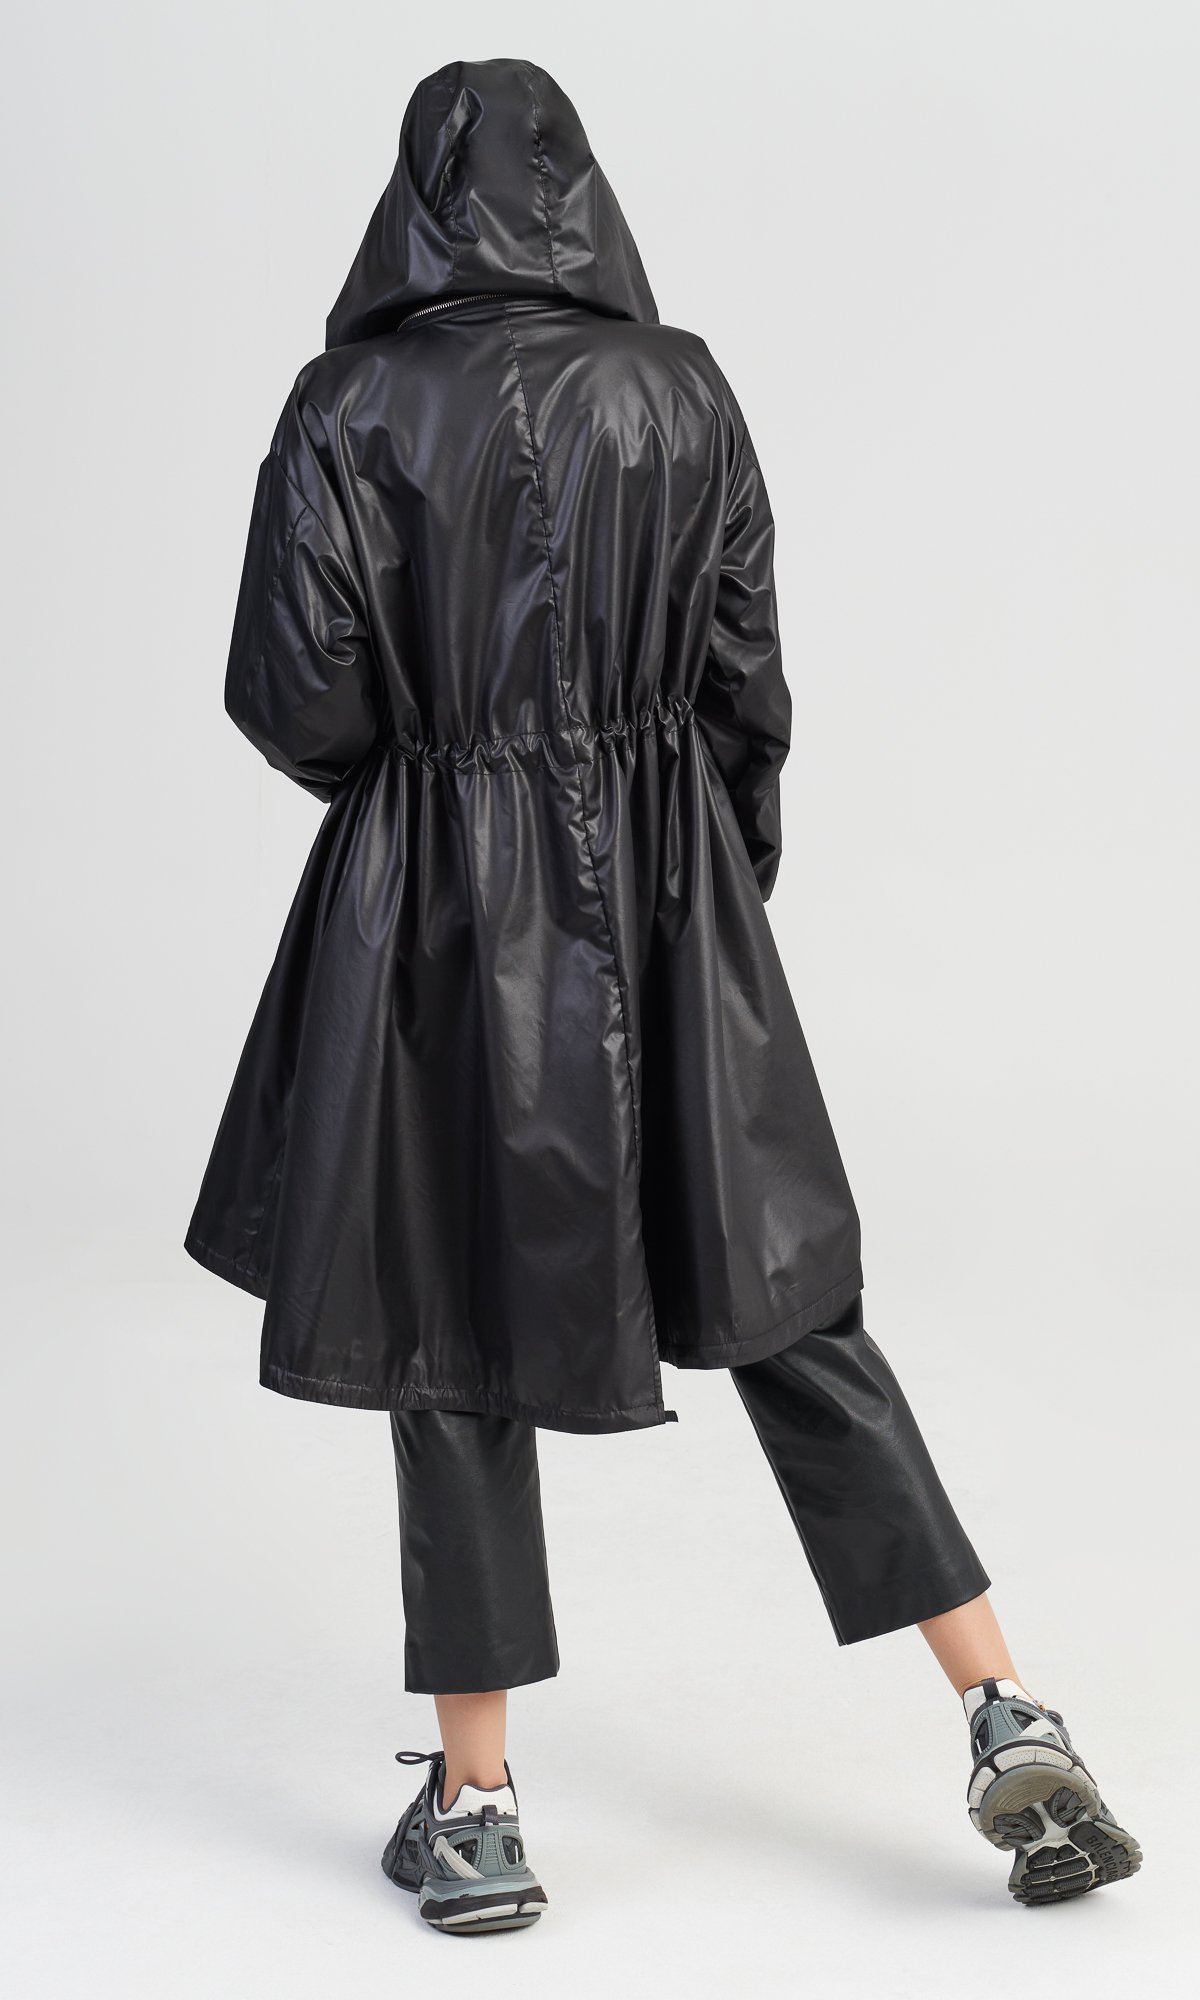 Hooded Raincoat with Backpack Straps